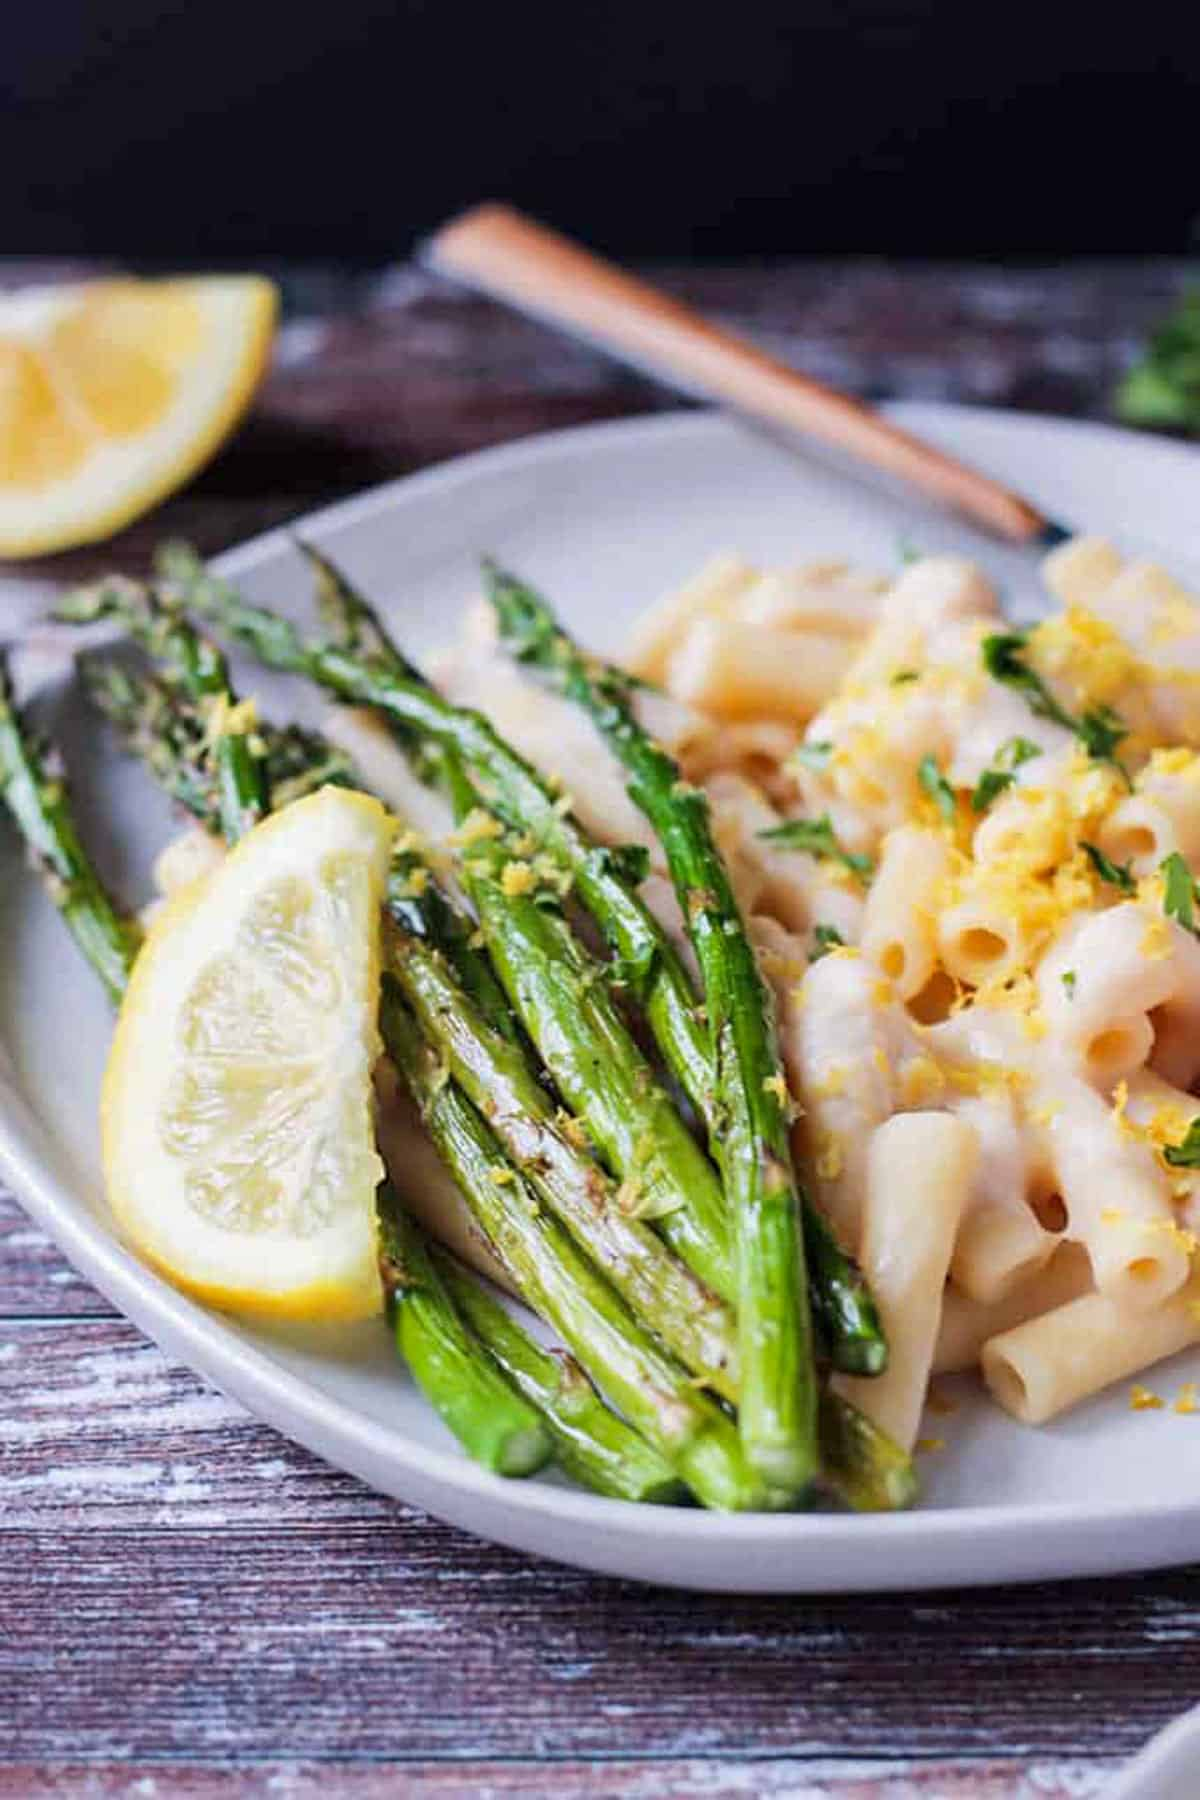 Close up of roasted asparagus topped with lemon zest and a lemon wedge.